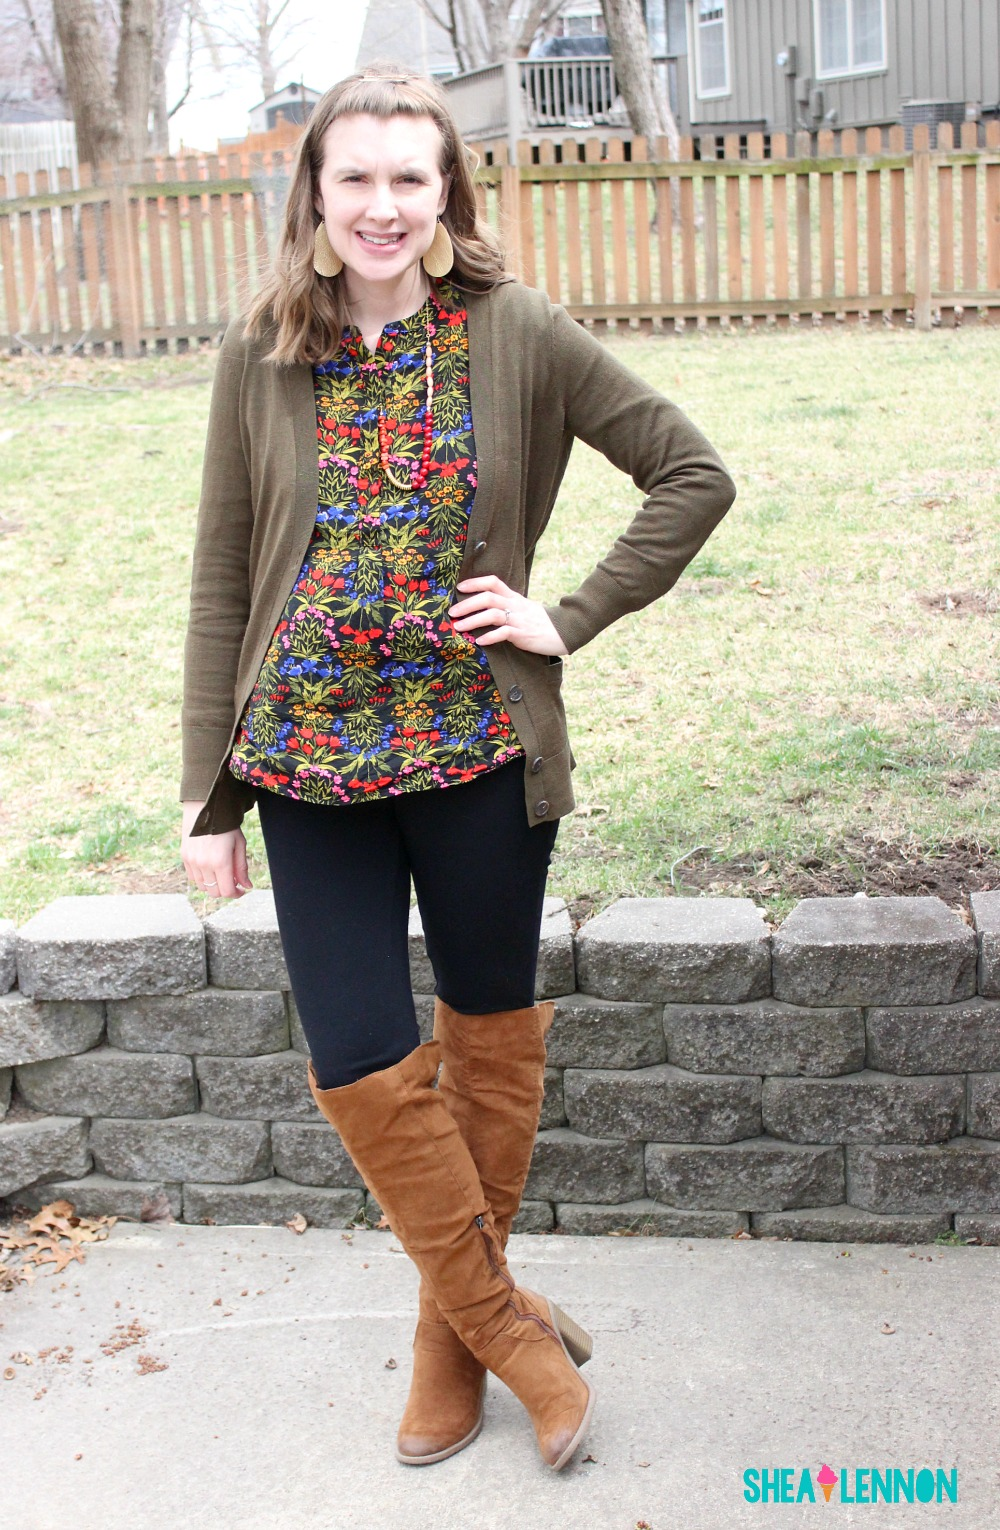 Winter outfit idea featuring a floral top, olive cardigan, ponte pants, and over the knee boots.